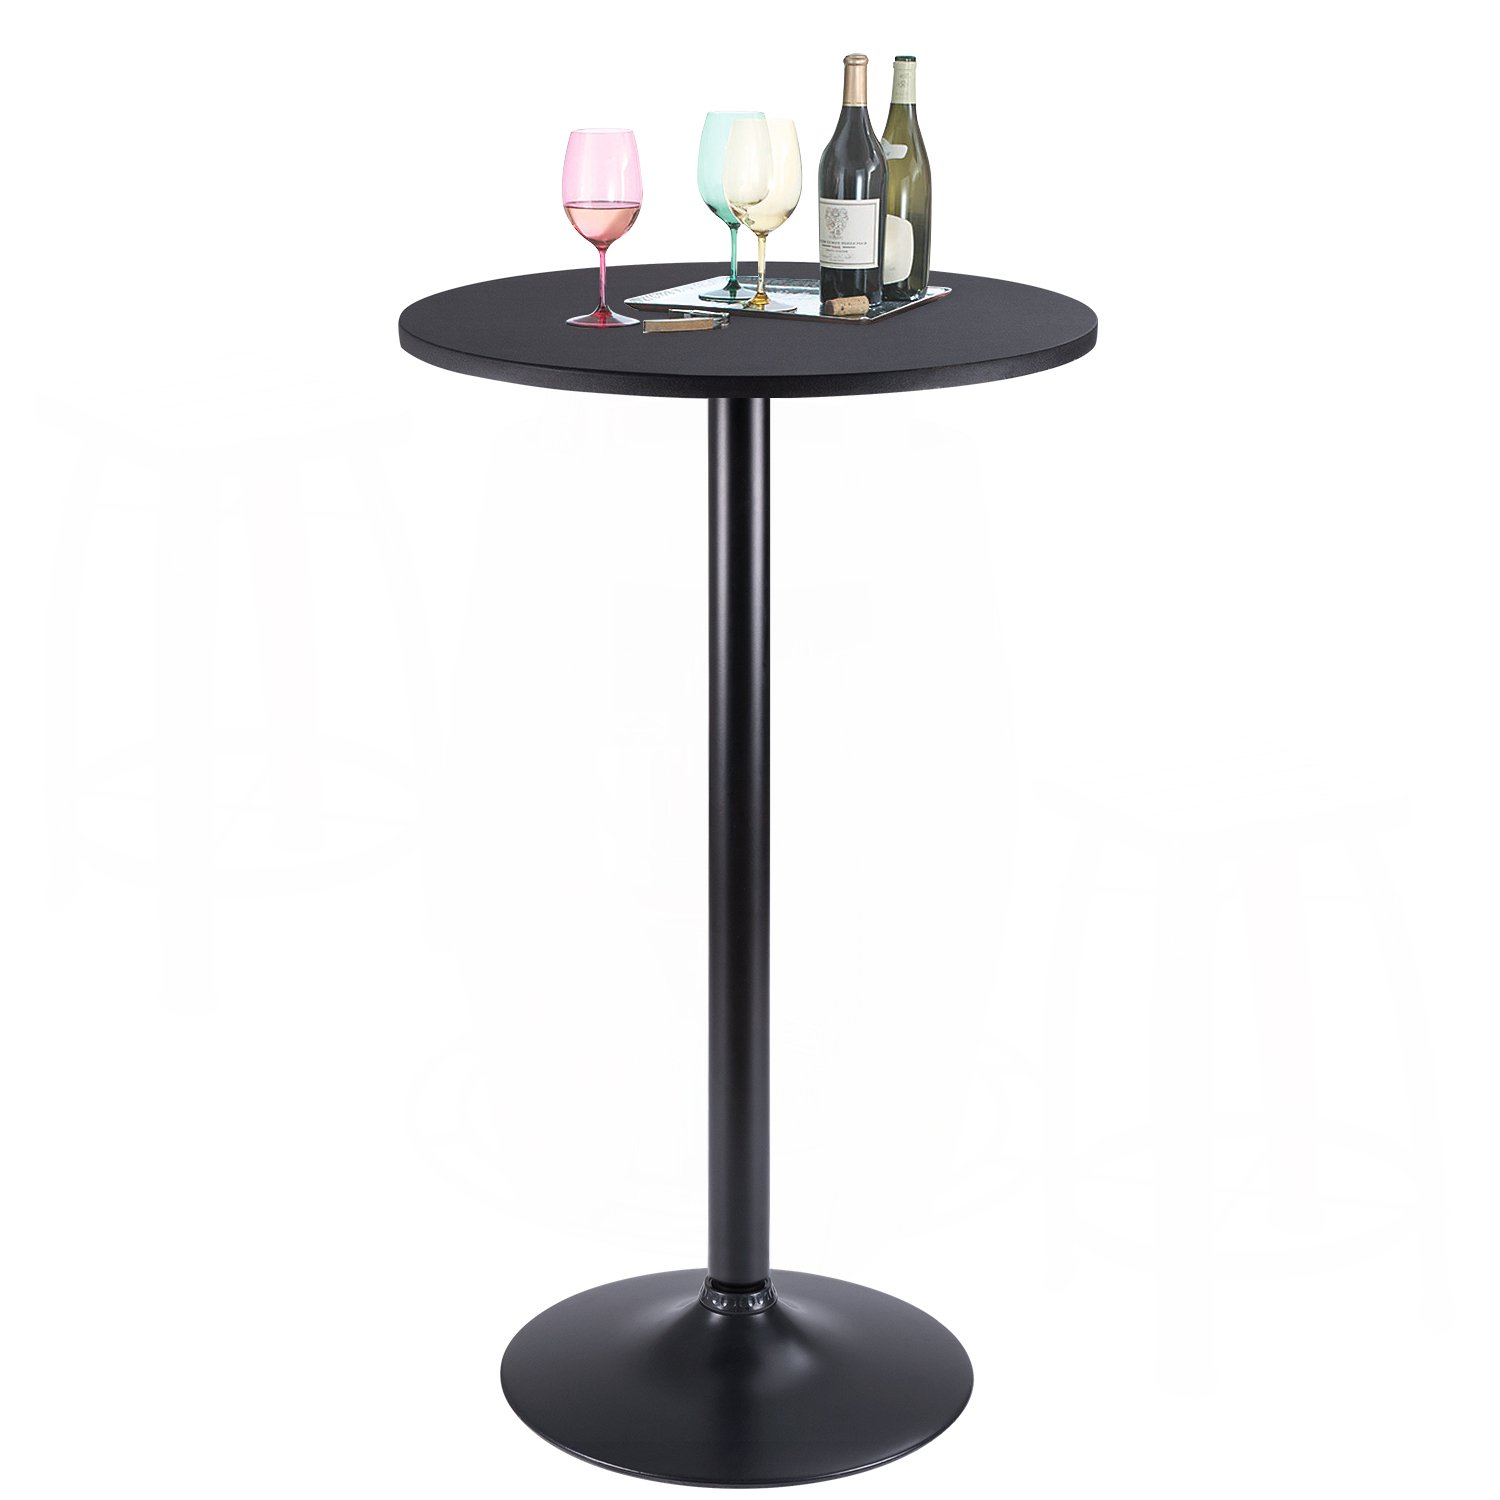 Furmax Bistro Pub Table Round Bar Height Cocktail Table Metal Base MDF Top Obsidian Table with Black Leg 23.8-Inch Top, 39.5-Inch Height